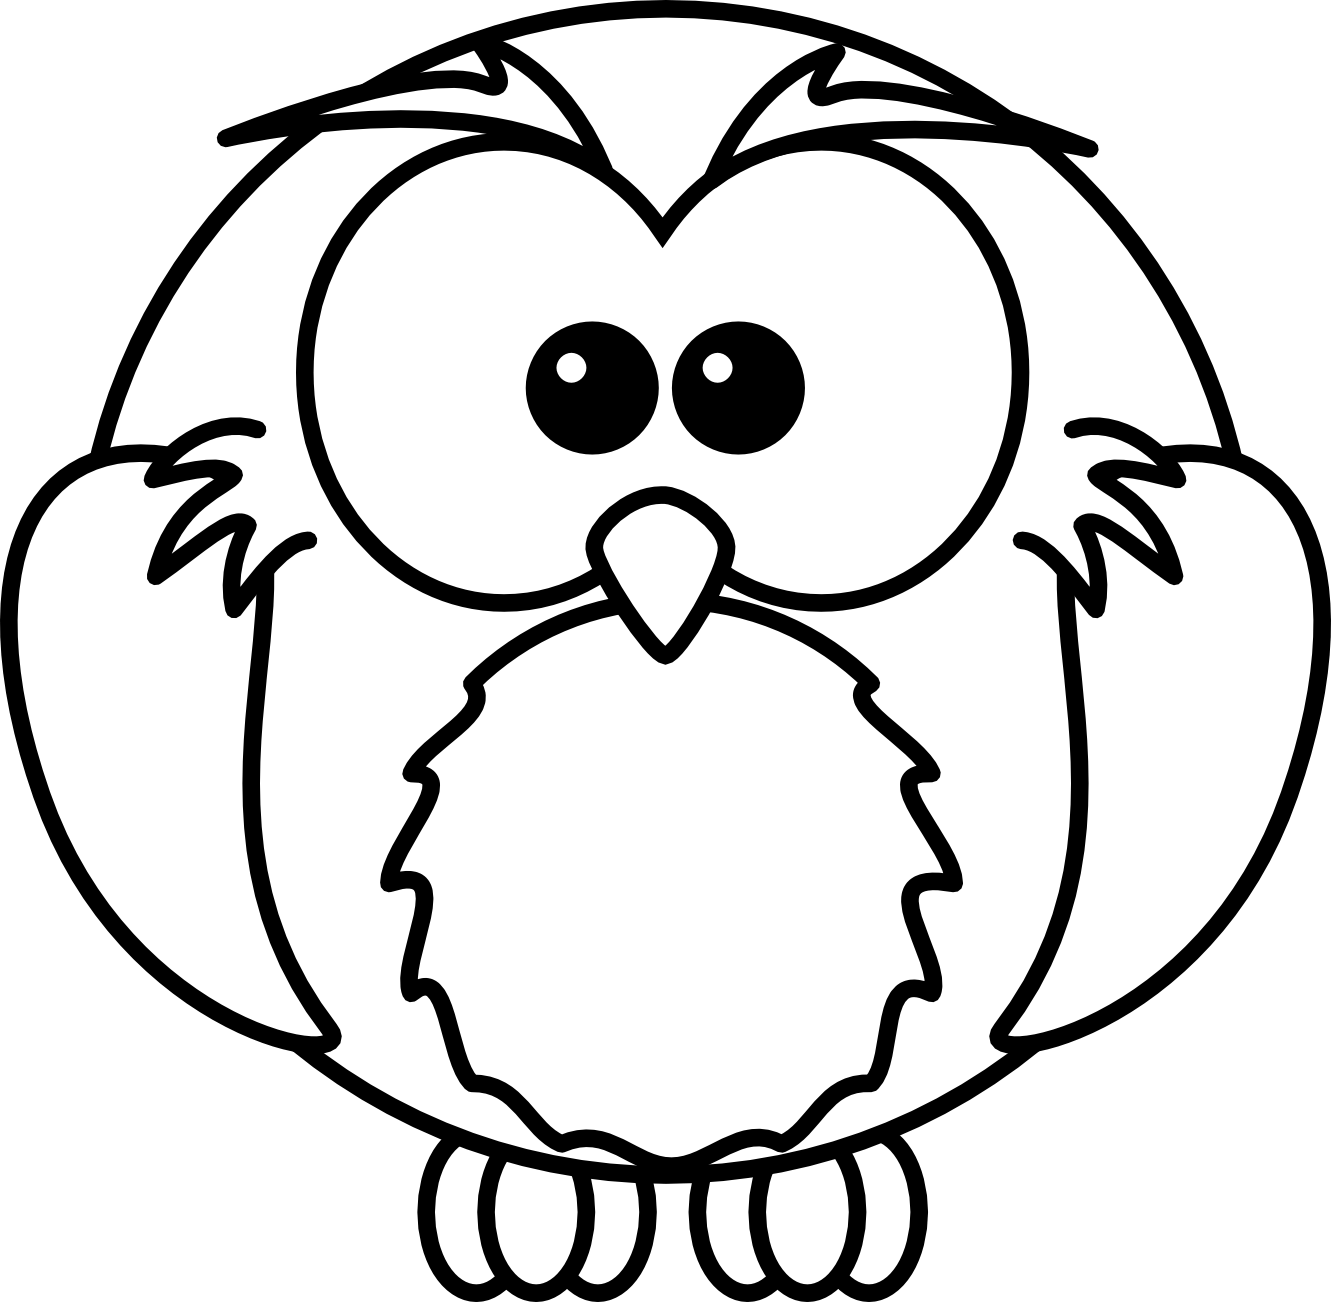 Back To School Clip Art Black And White Clipart Panda